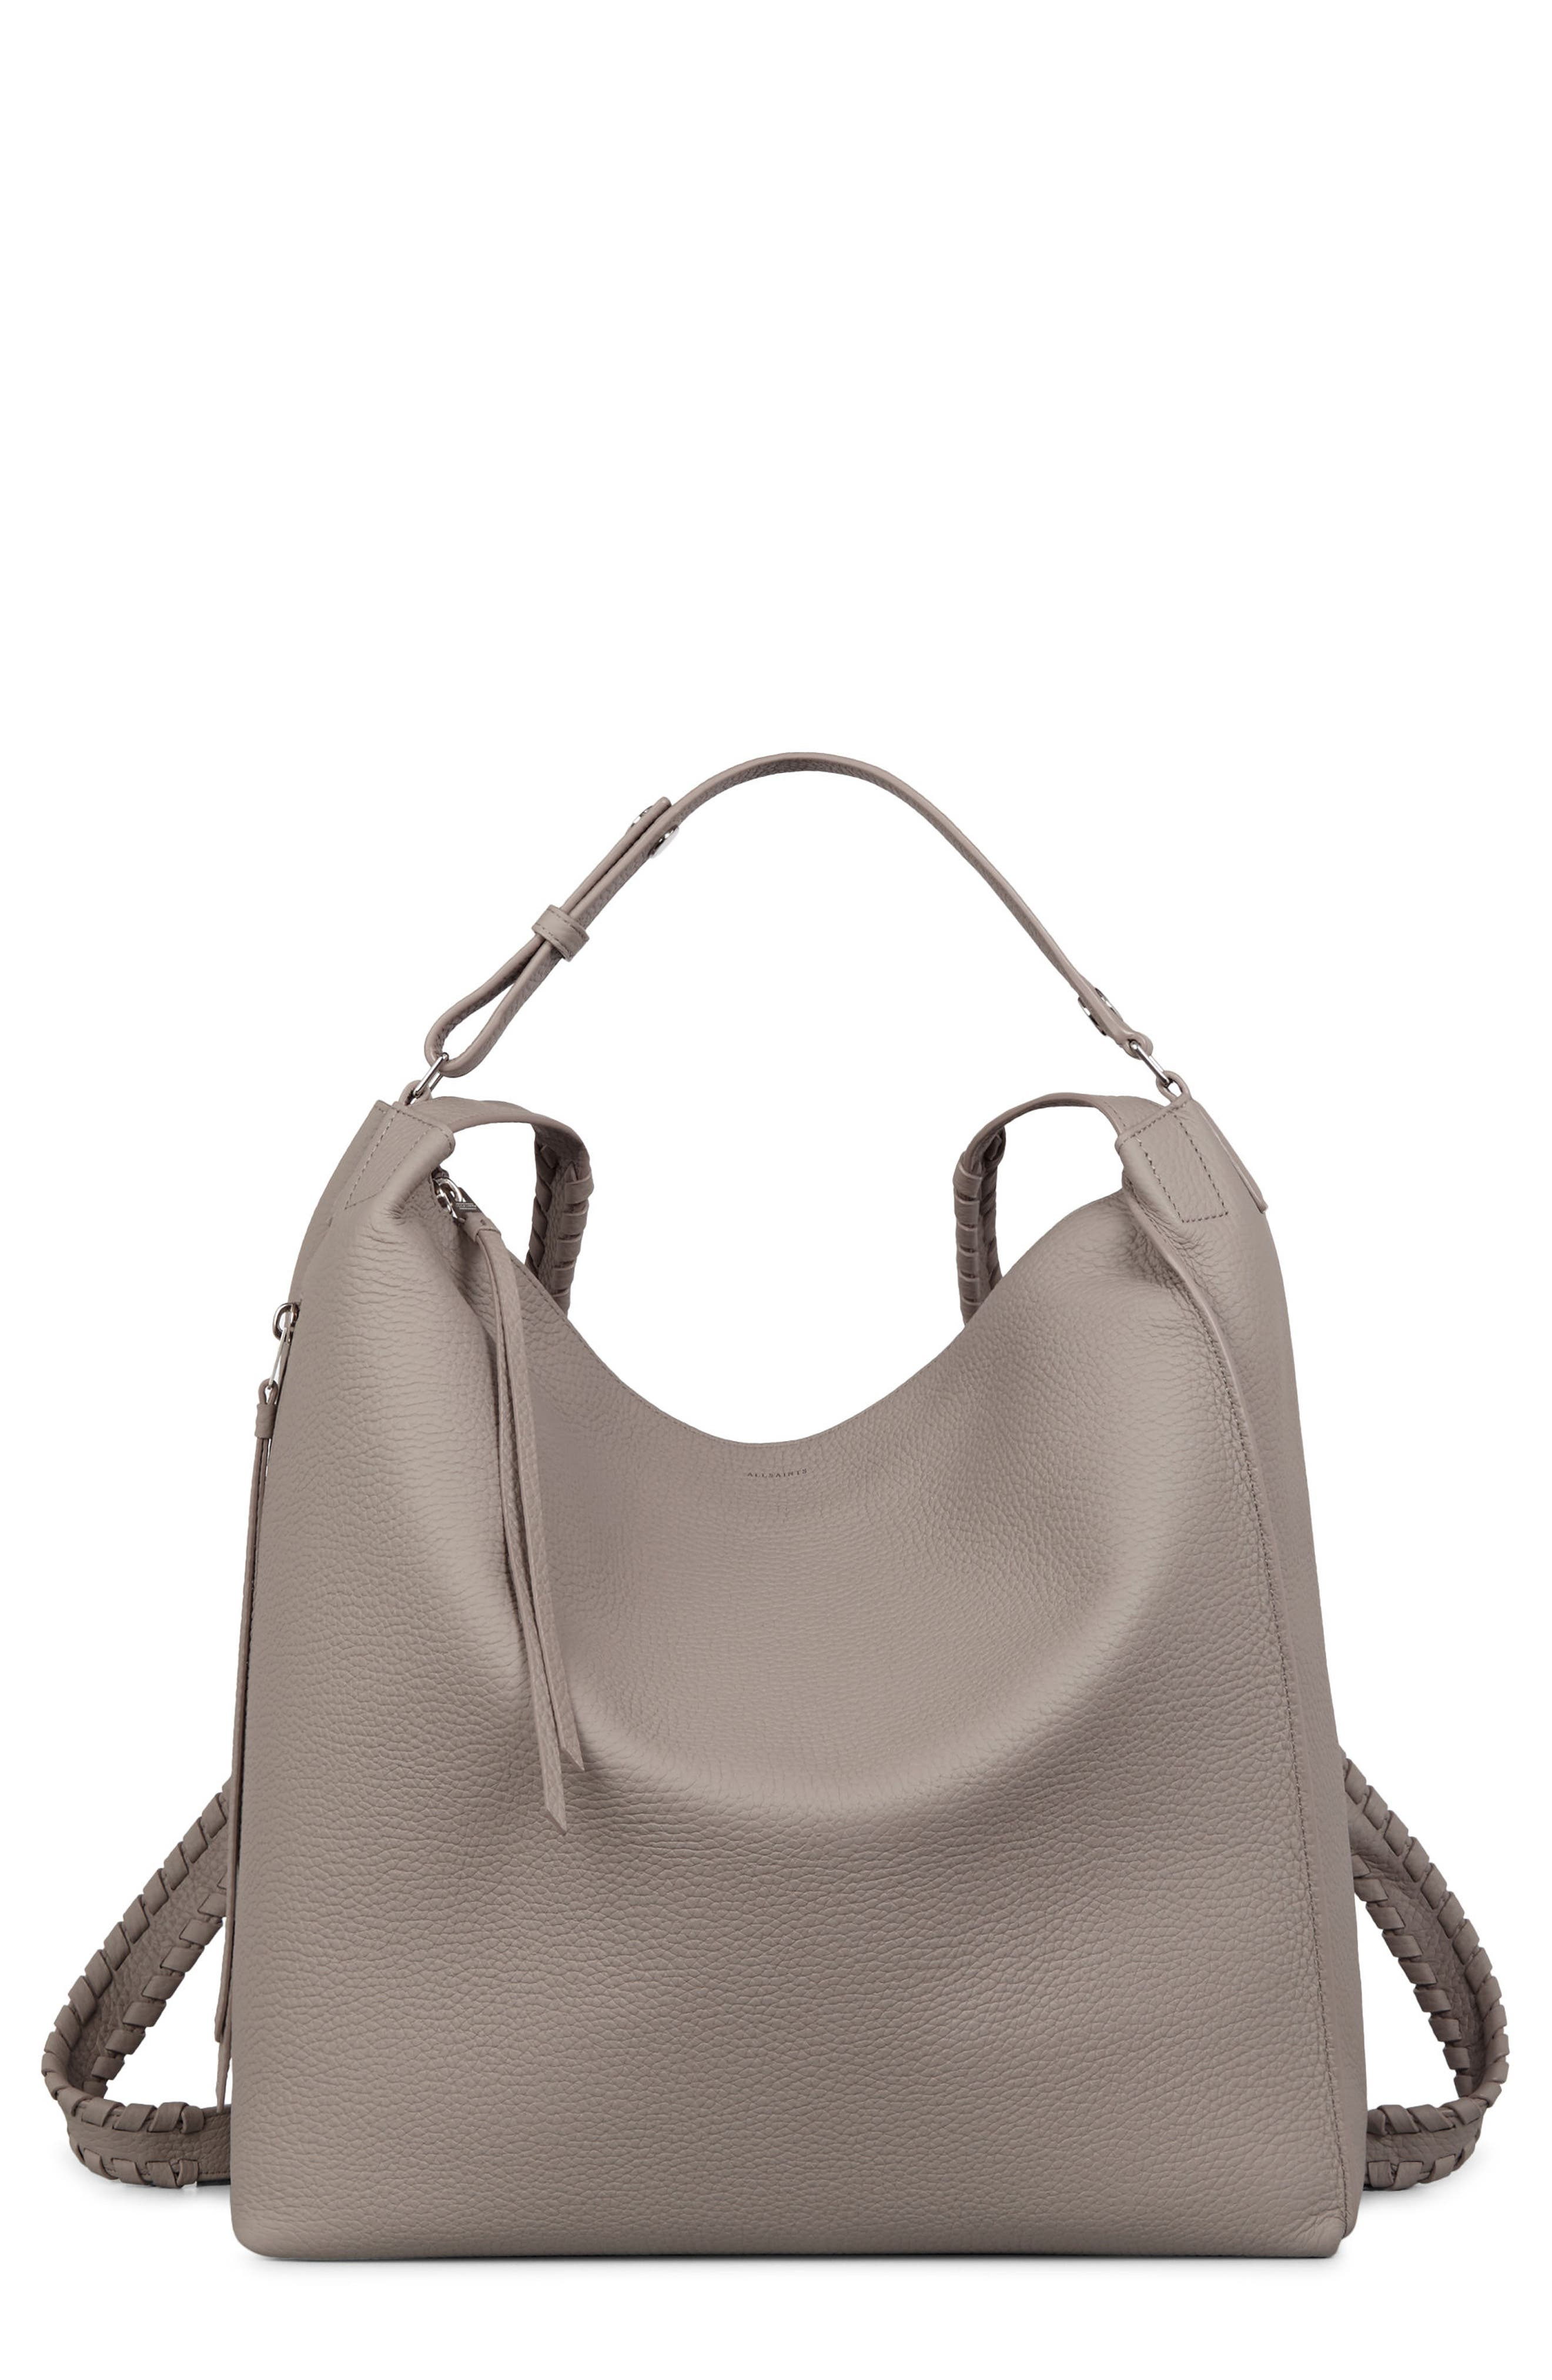 Kita Convertible Leather Backpack,                             Main thumbnail 1, color,                             TAUPE GREY